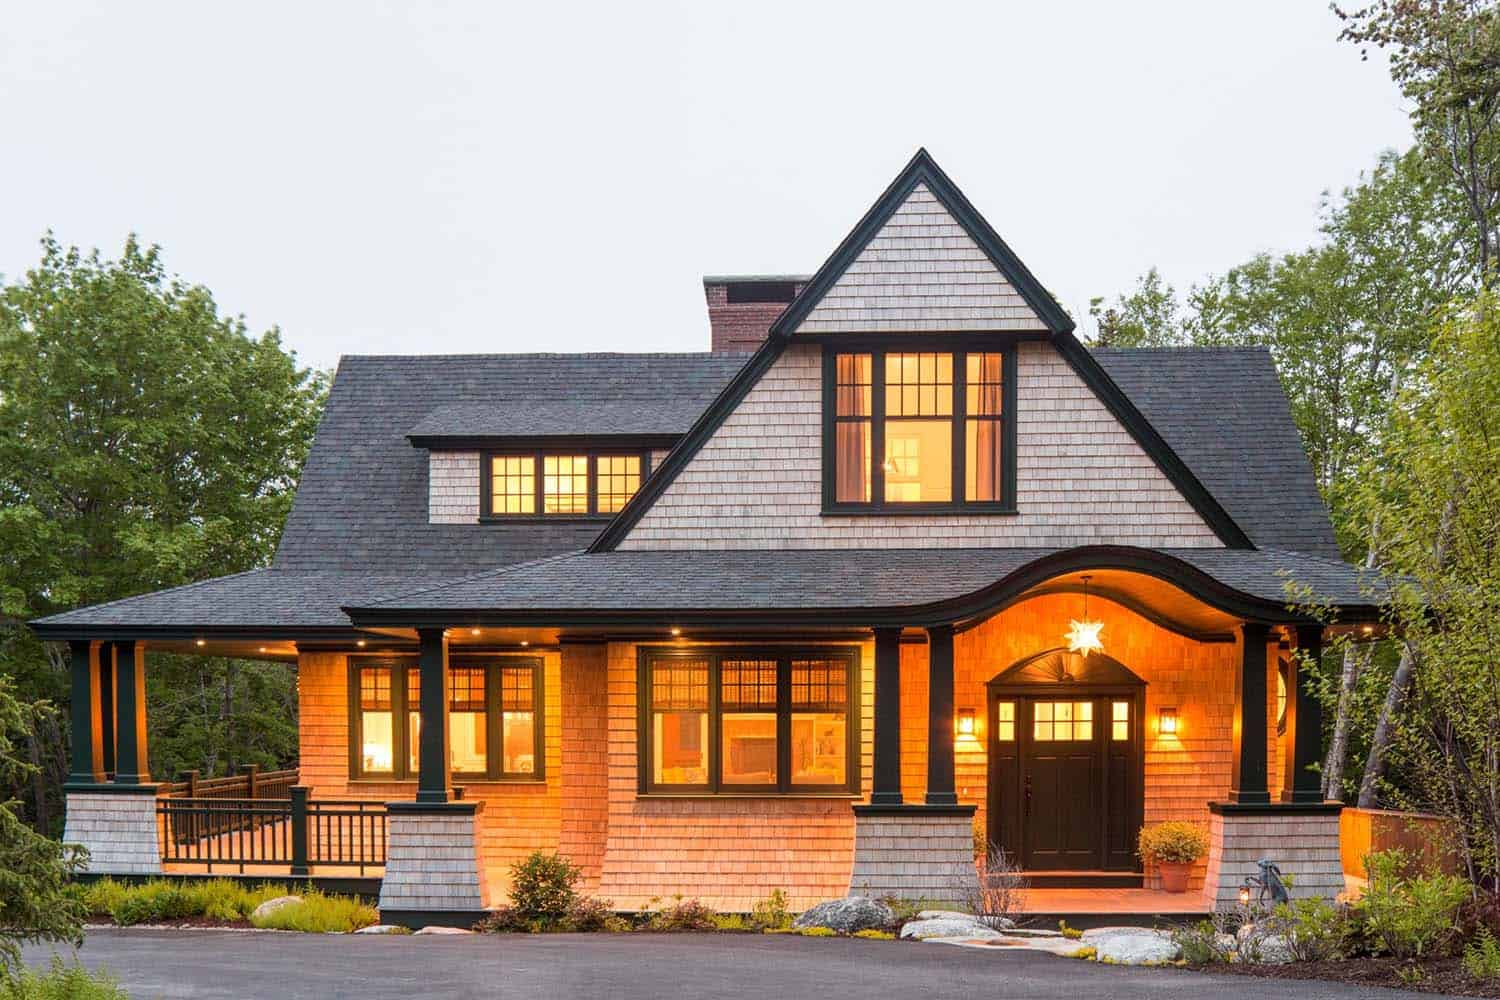 Shingle Style Cottage-WMH Architects-01-1 Kindesign